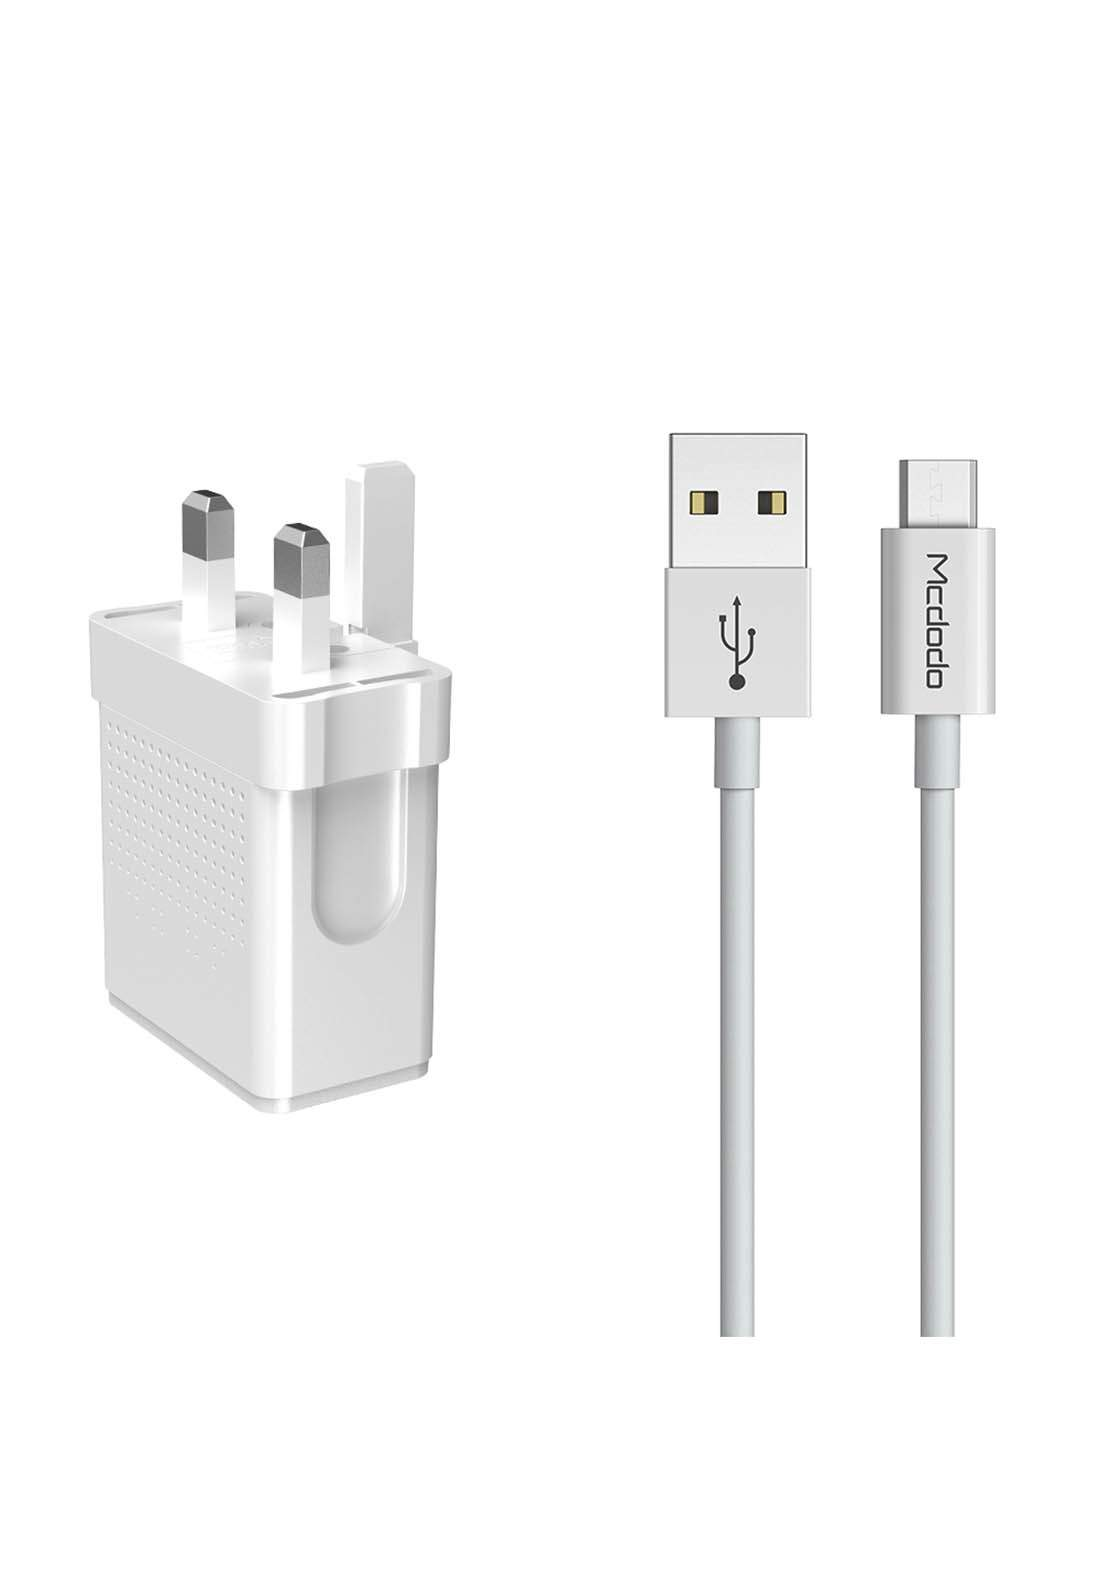 Mcdodo Dual USB Output Travel Charger Set with Micro Cable - White شاحن